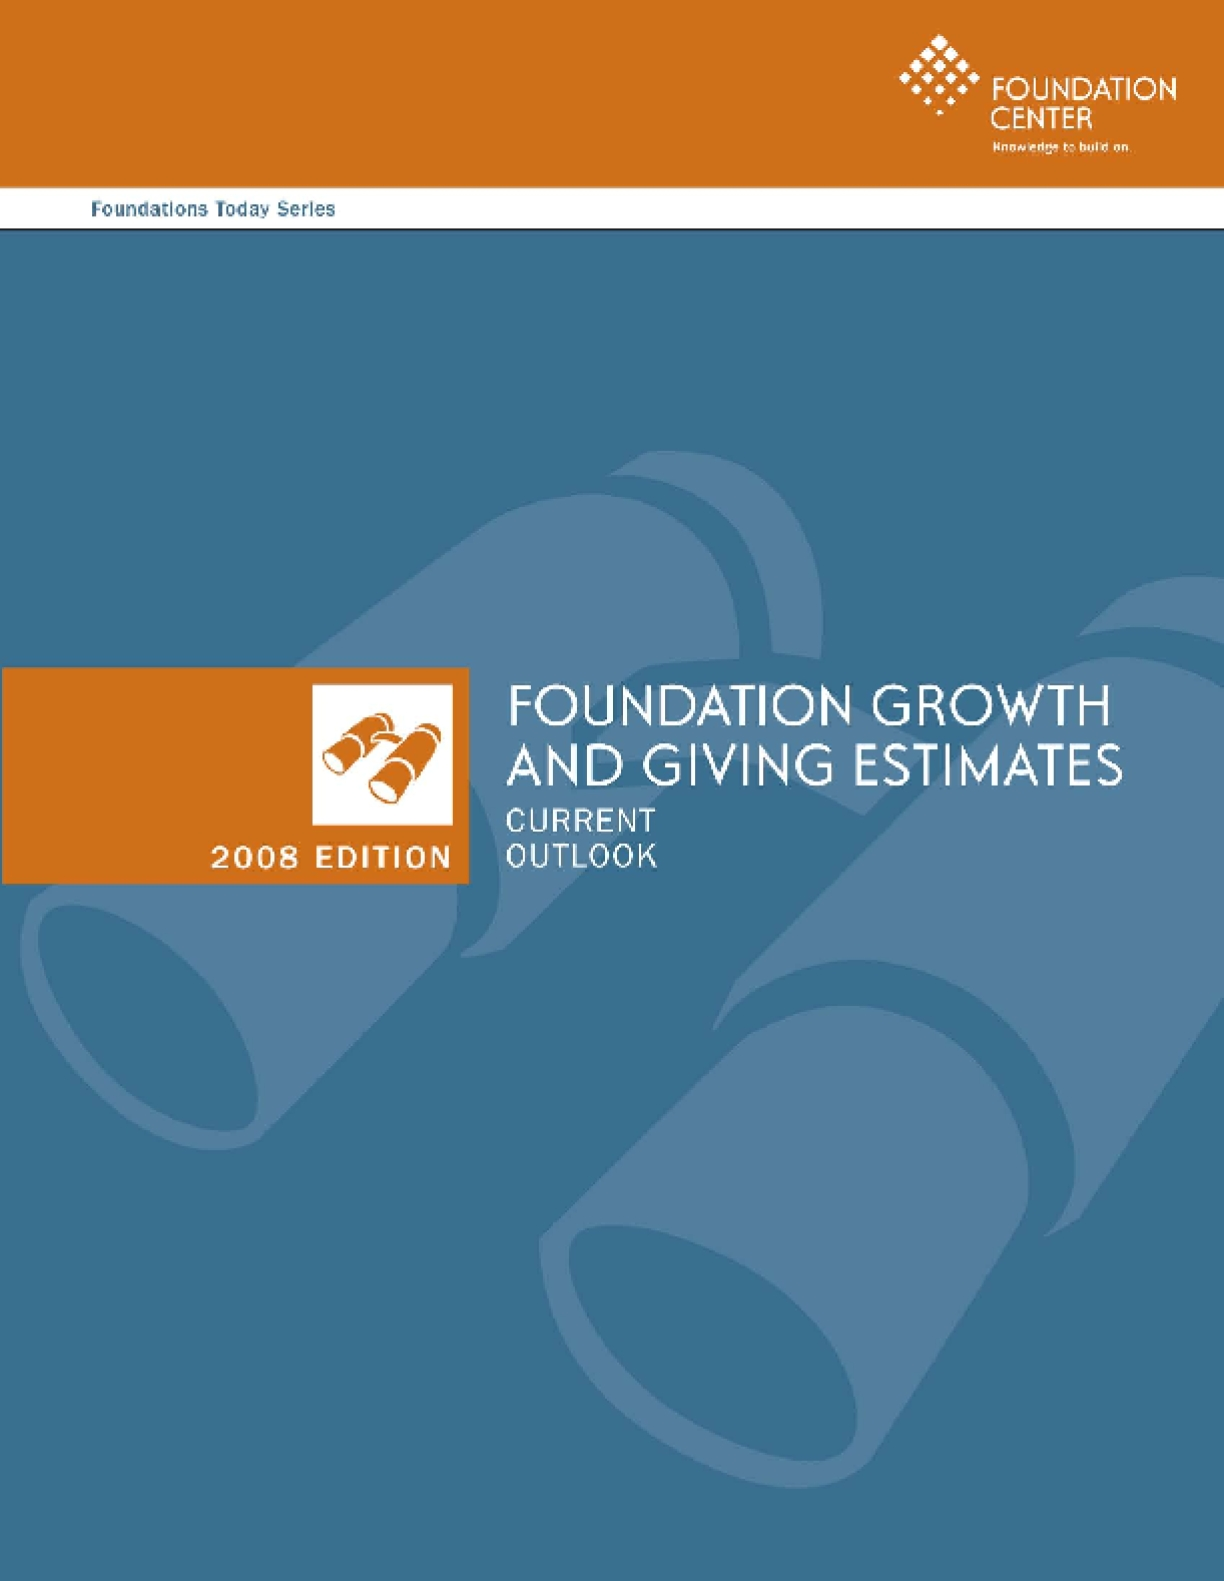 Foundation Growth and Giving Estimates: 2008 Edition